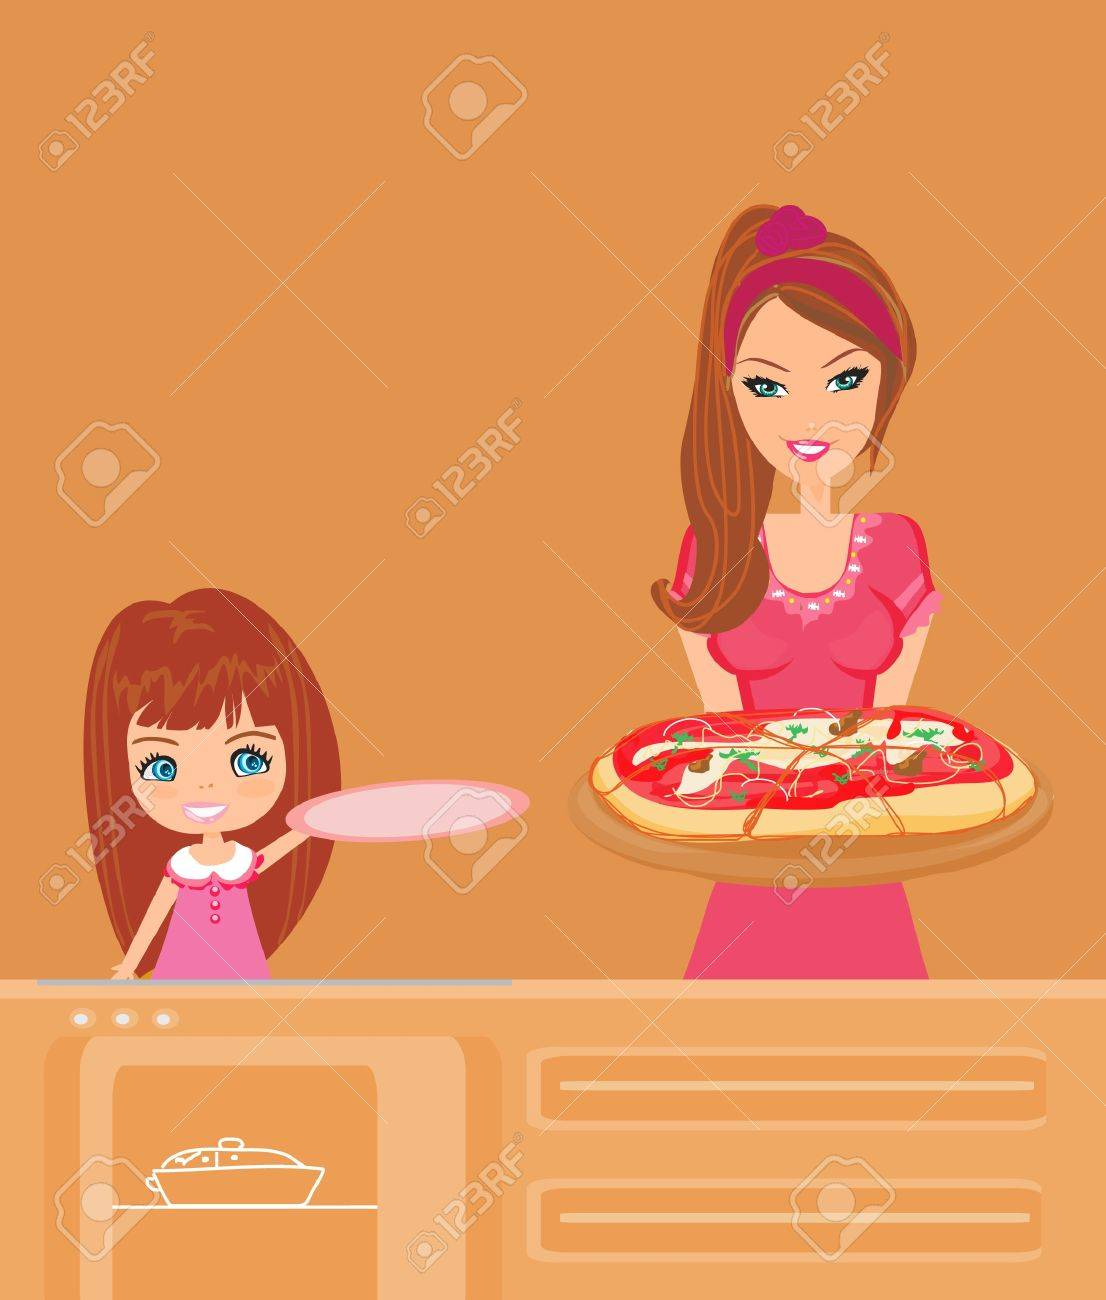 Housewife serving pizza Stock Vector - 11934547